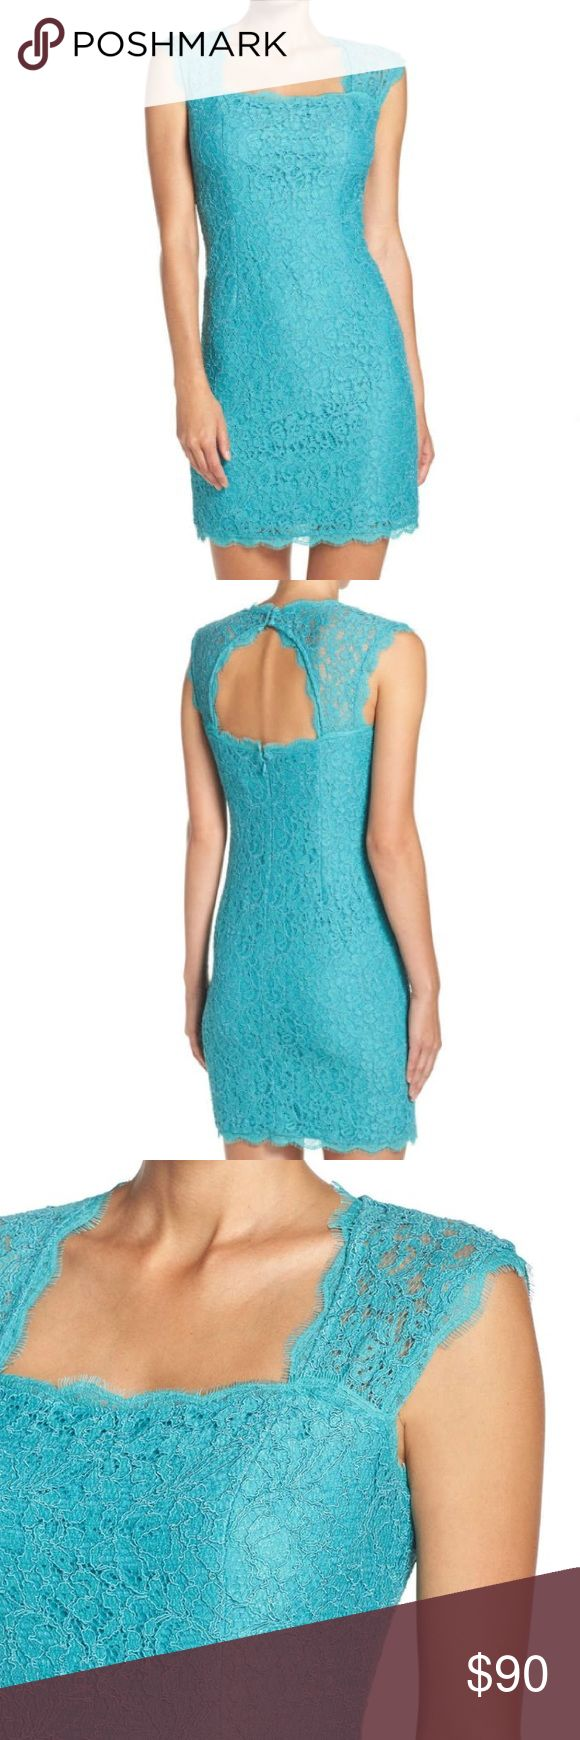 Adrianna Papell Lace Sheath Dress This is a gorgeous sheath dress with lace overlay. 👗 Jade color. Cap sleeves. Envelope back cutout detail. Hidden back zip and rouleau-button closure. Fully lined. 36 inch length. This is the perfect dress for spring/summer special occasions!! Adrianna Papell Dresses